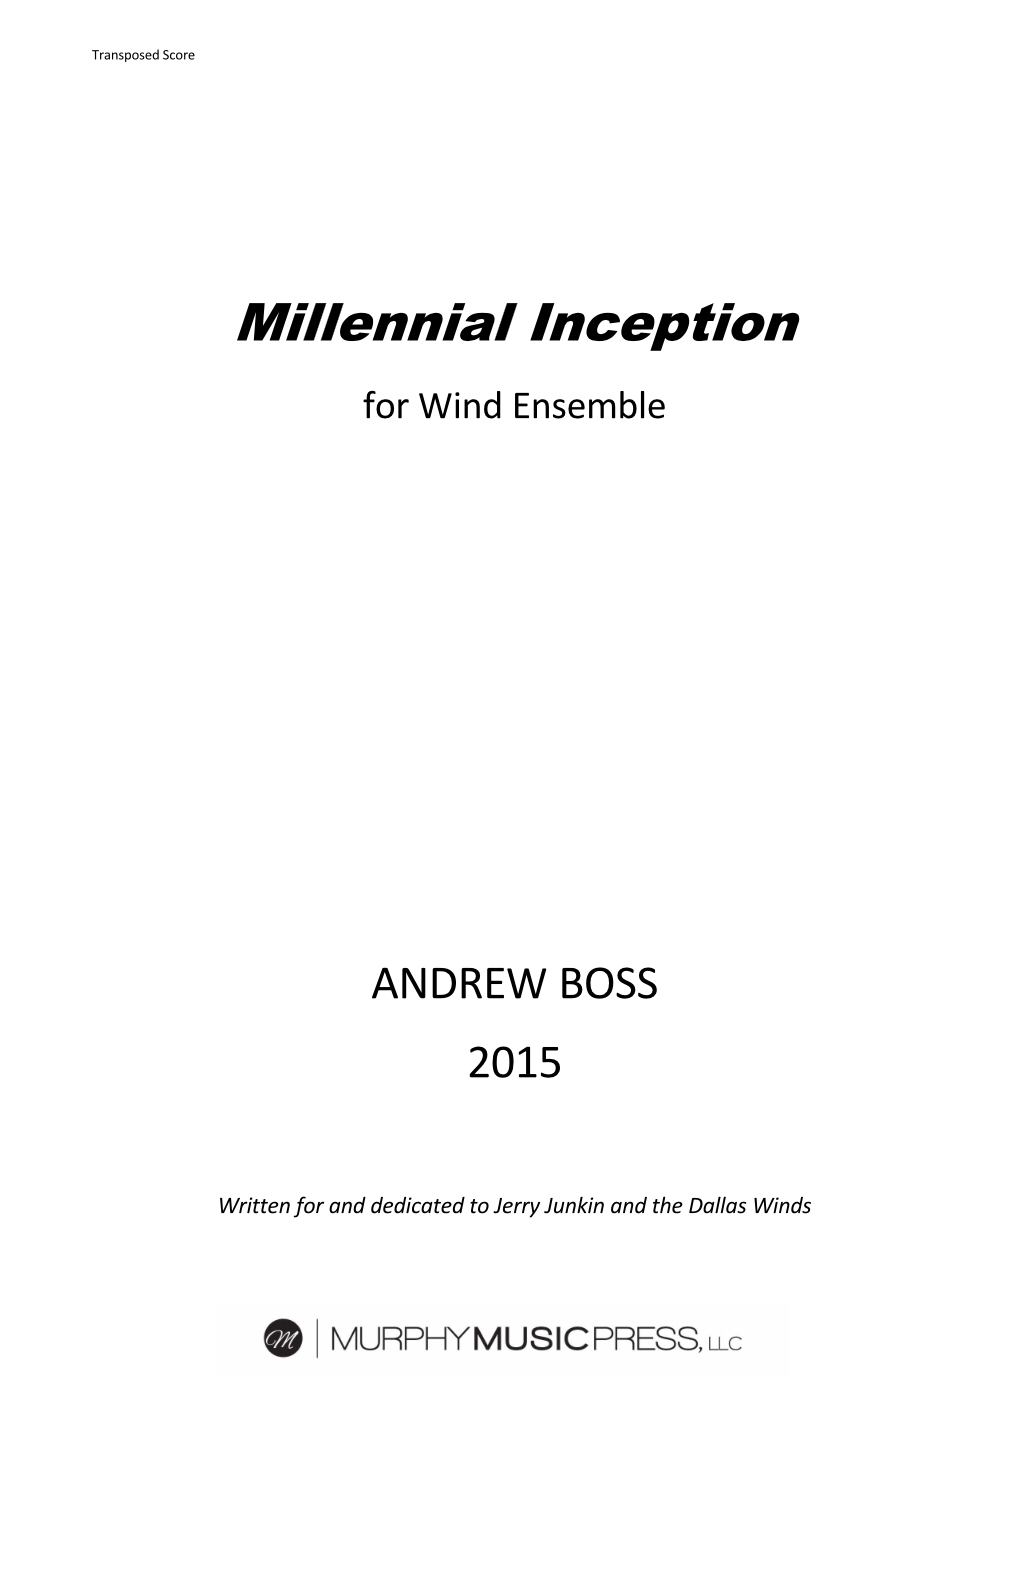 Millennial Inception (antiphonal Instrumentation)  by Andrew Boss